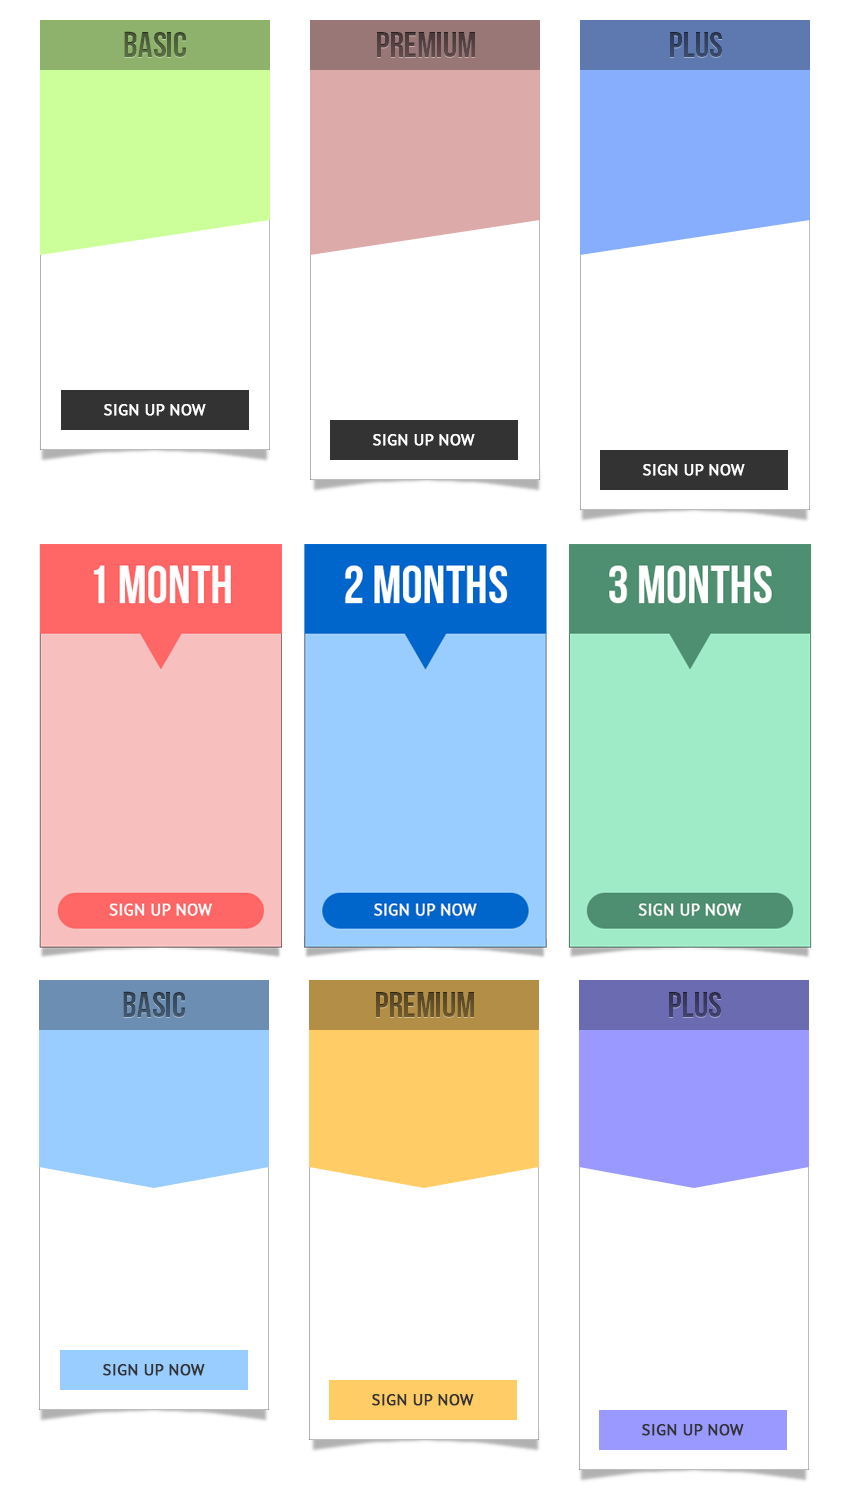 Pricing Tables with Text